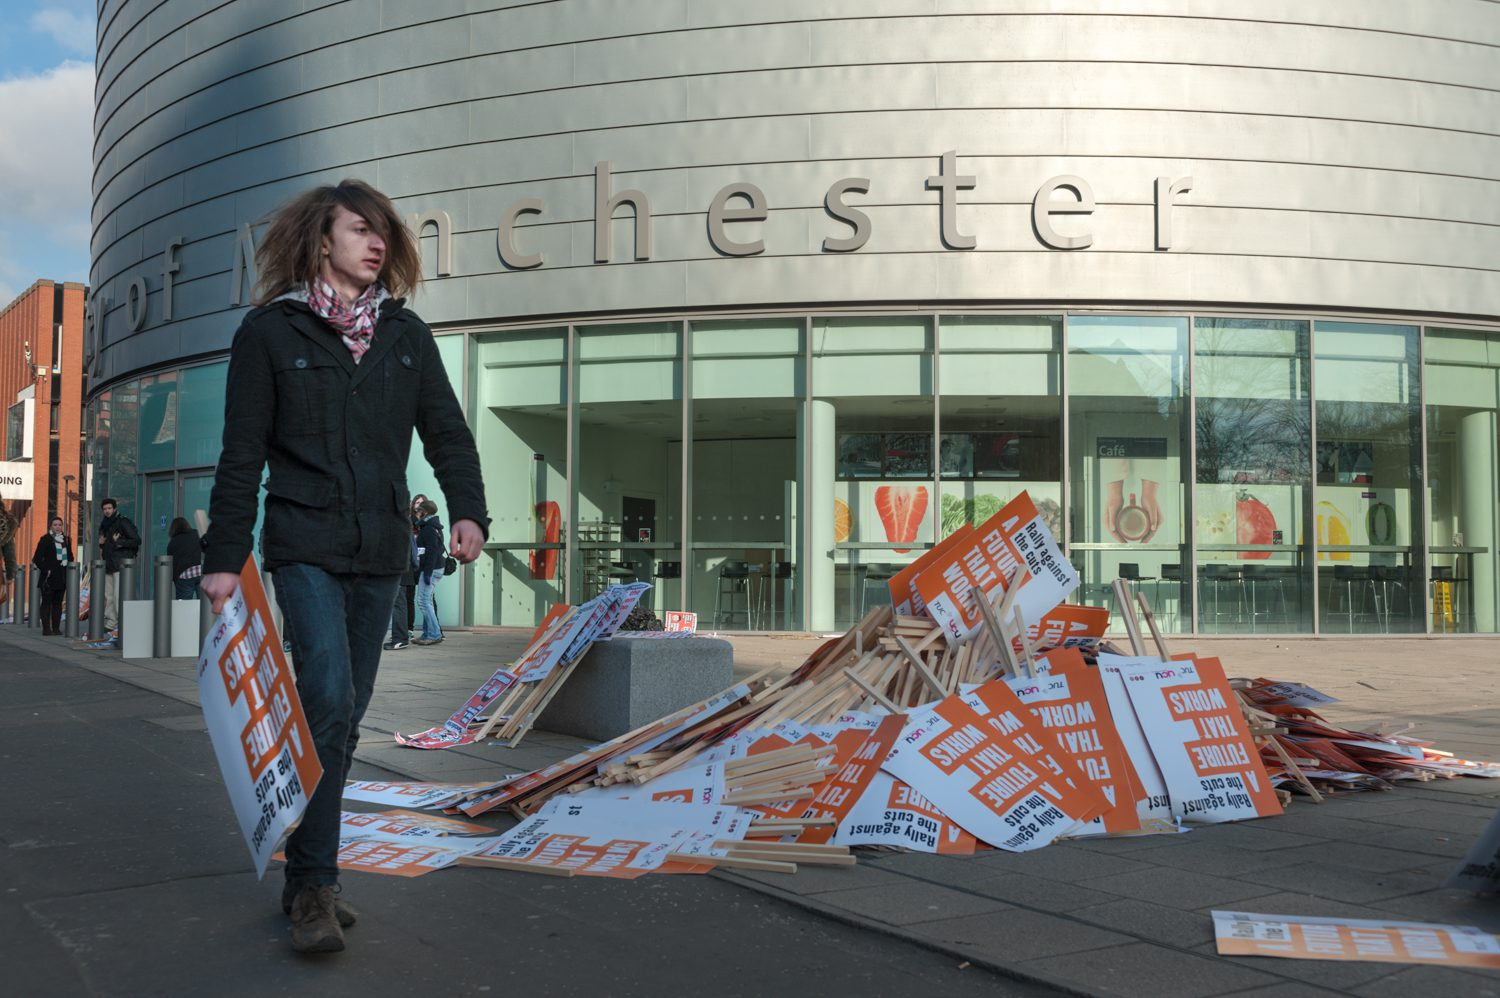 student protest manchester documentary photography stuart coleman